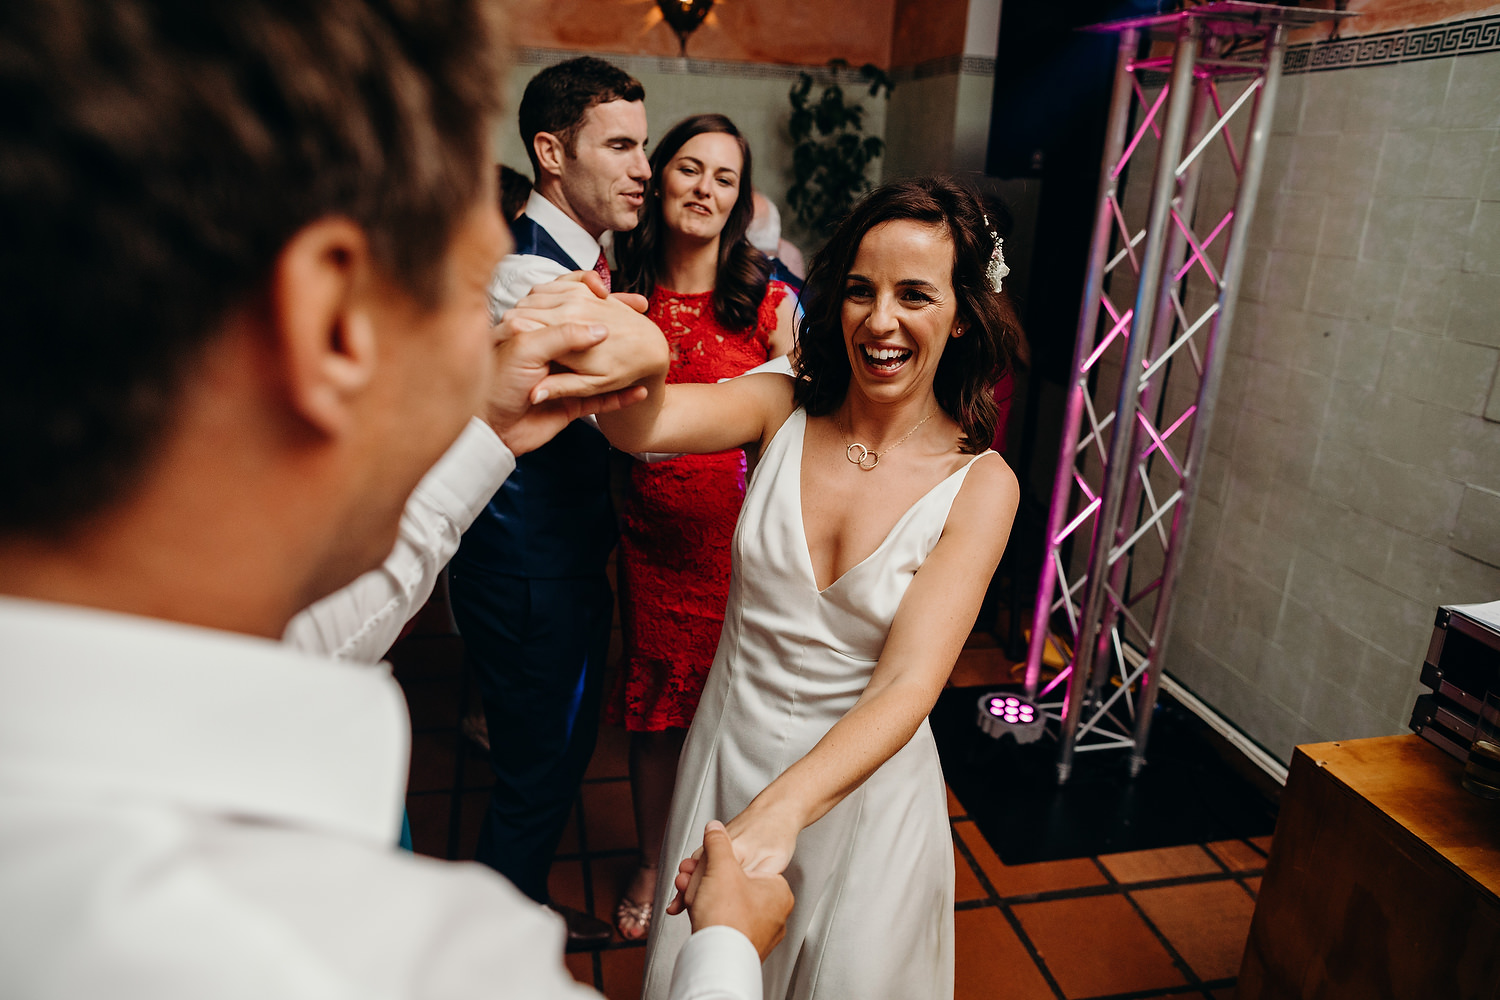 bride smiling on dancefloor